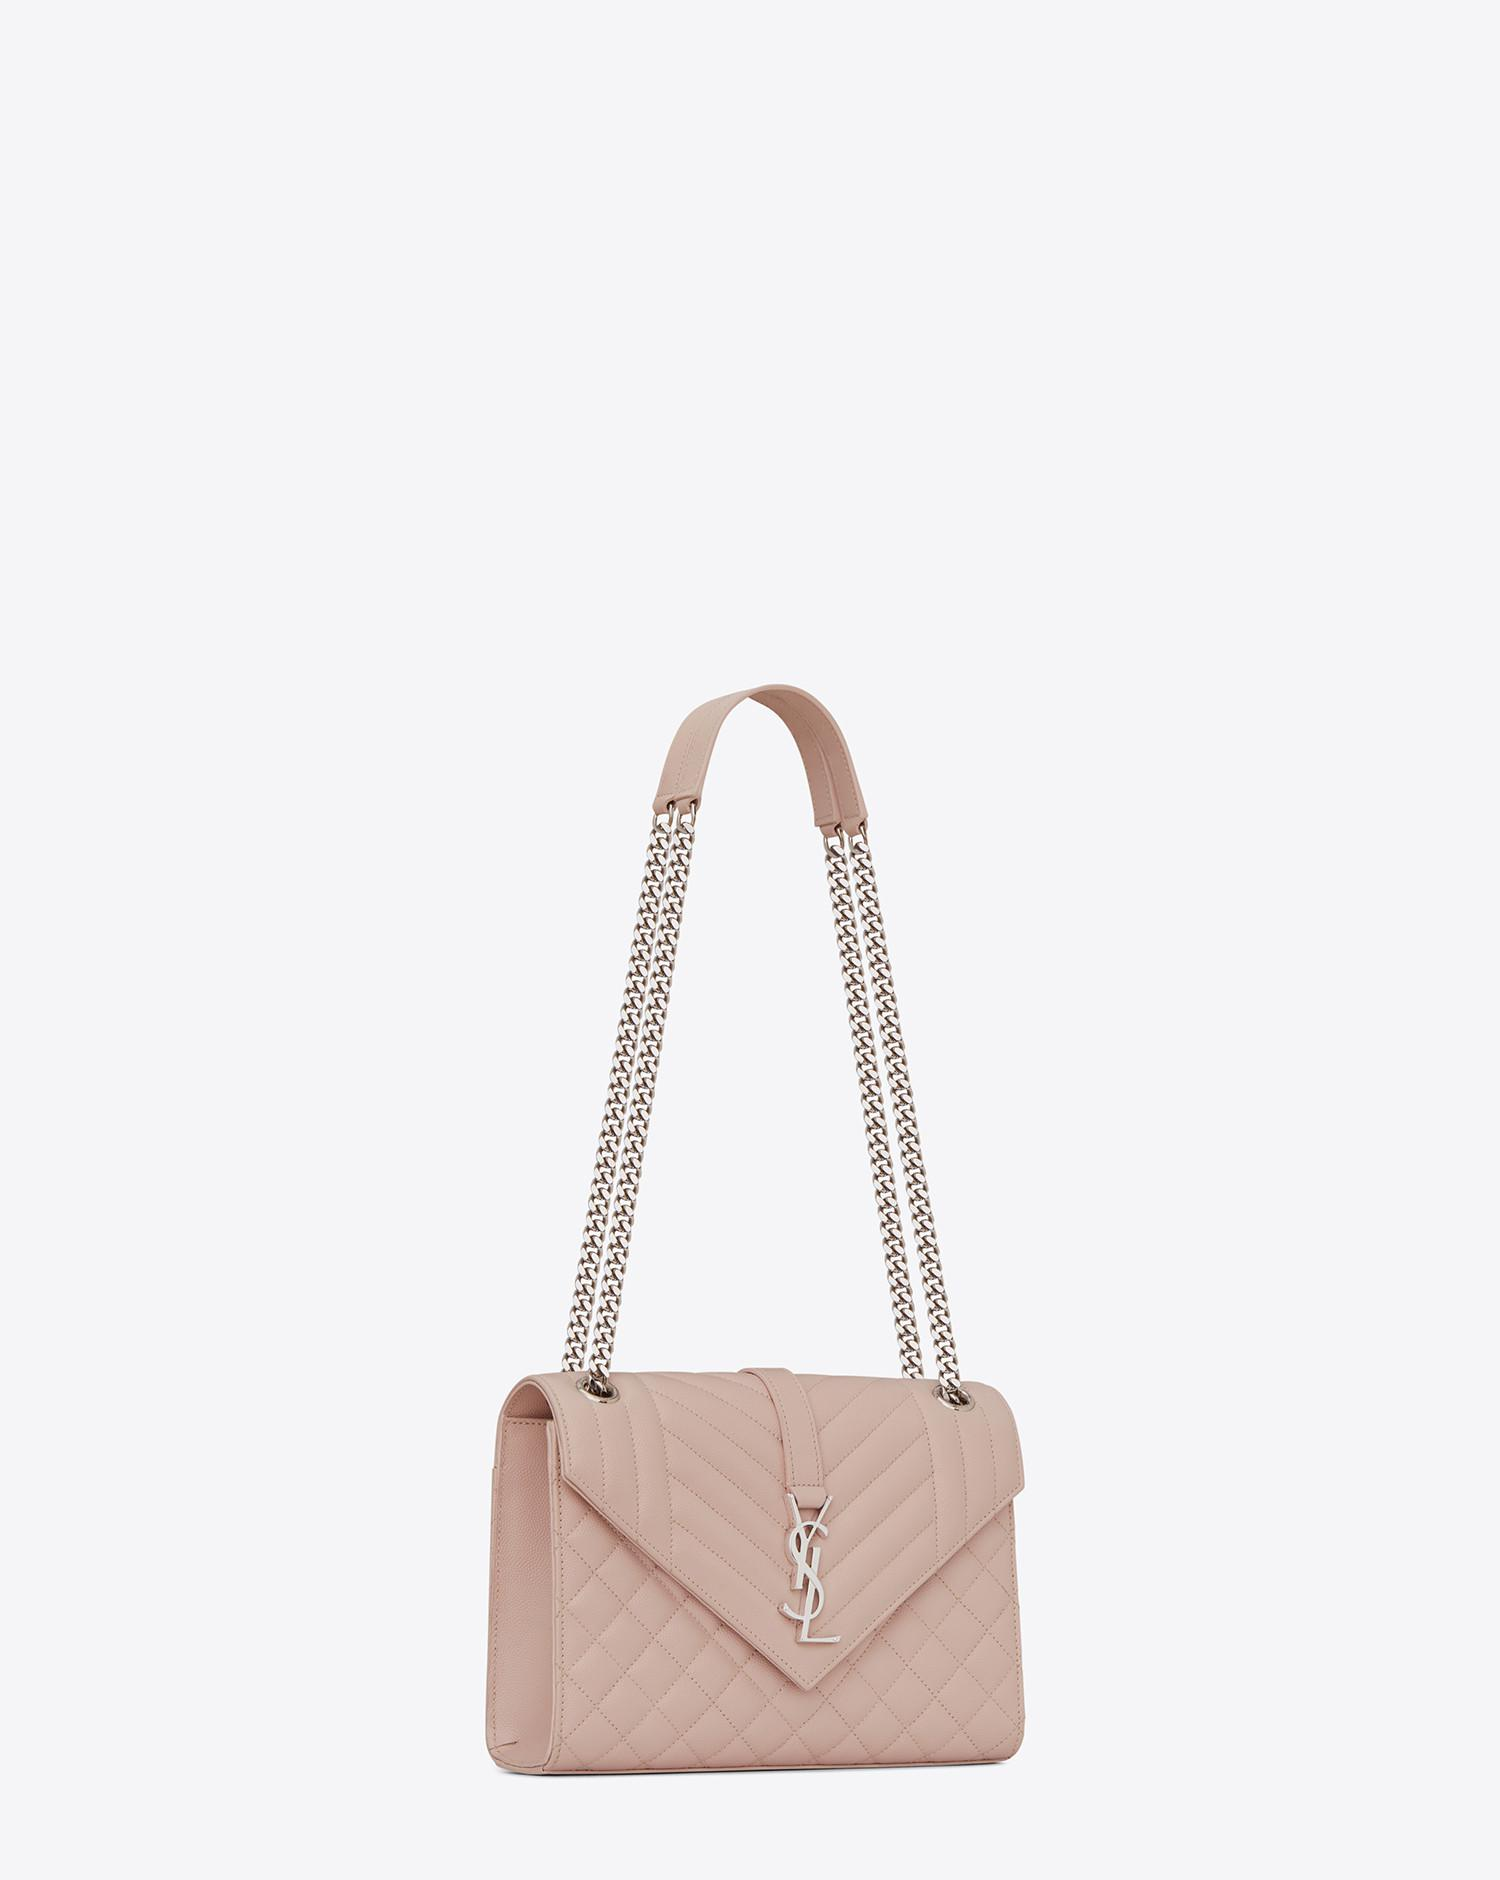 56668ef74ab3 Saint Laurent. Women s Pink Envelope Medium Bag In Grain De Poudre Embossed  Leather